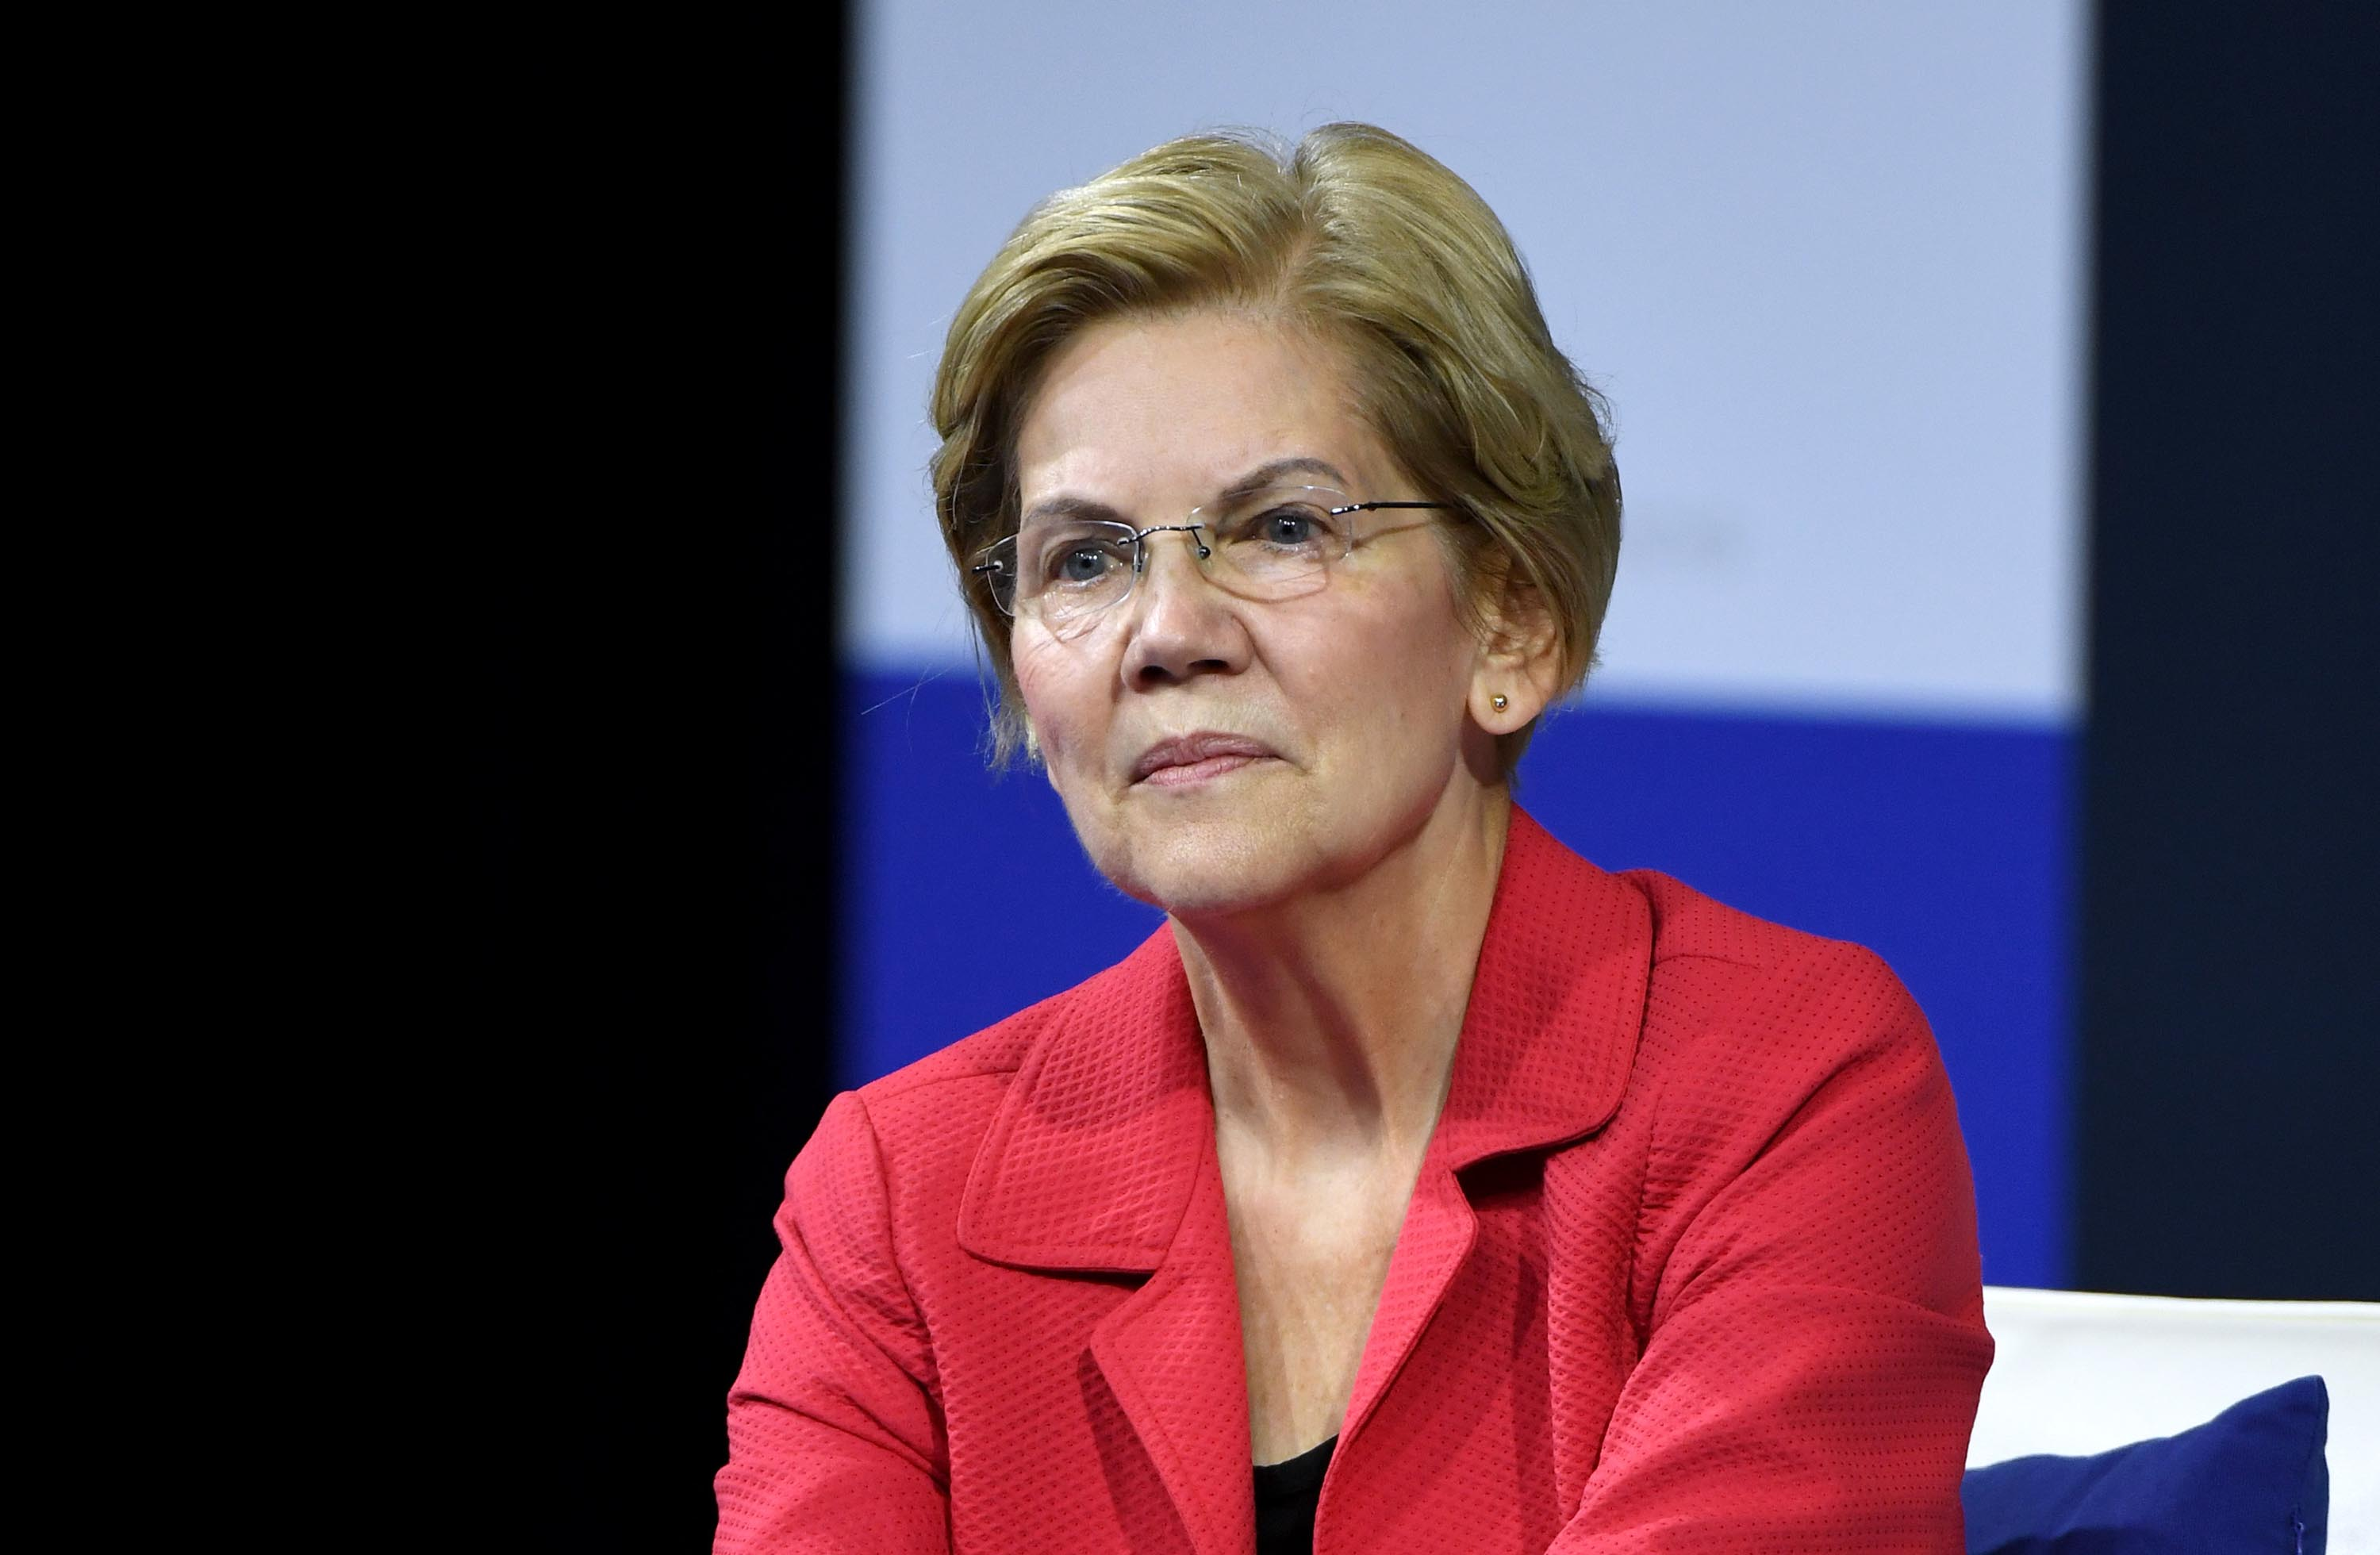 Warren says she's ready to run until convention even if she's behind in delegates